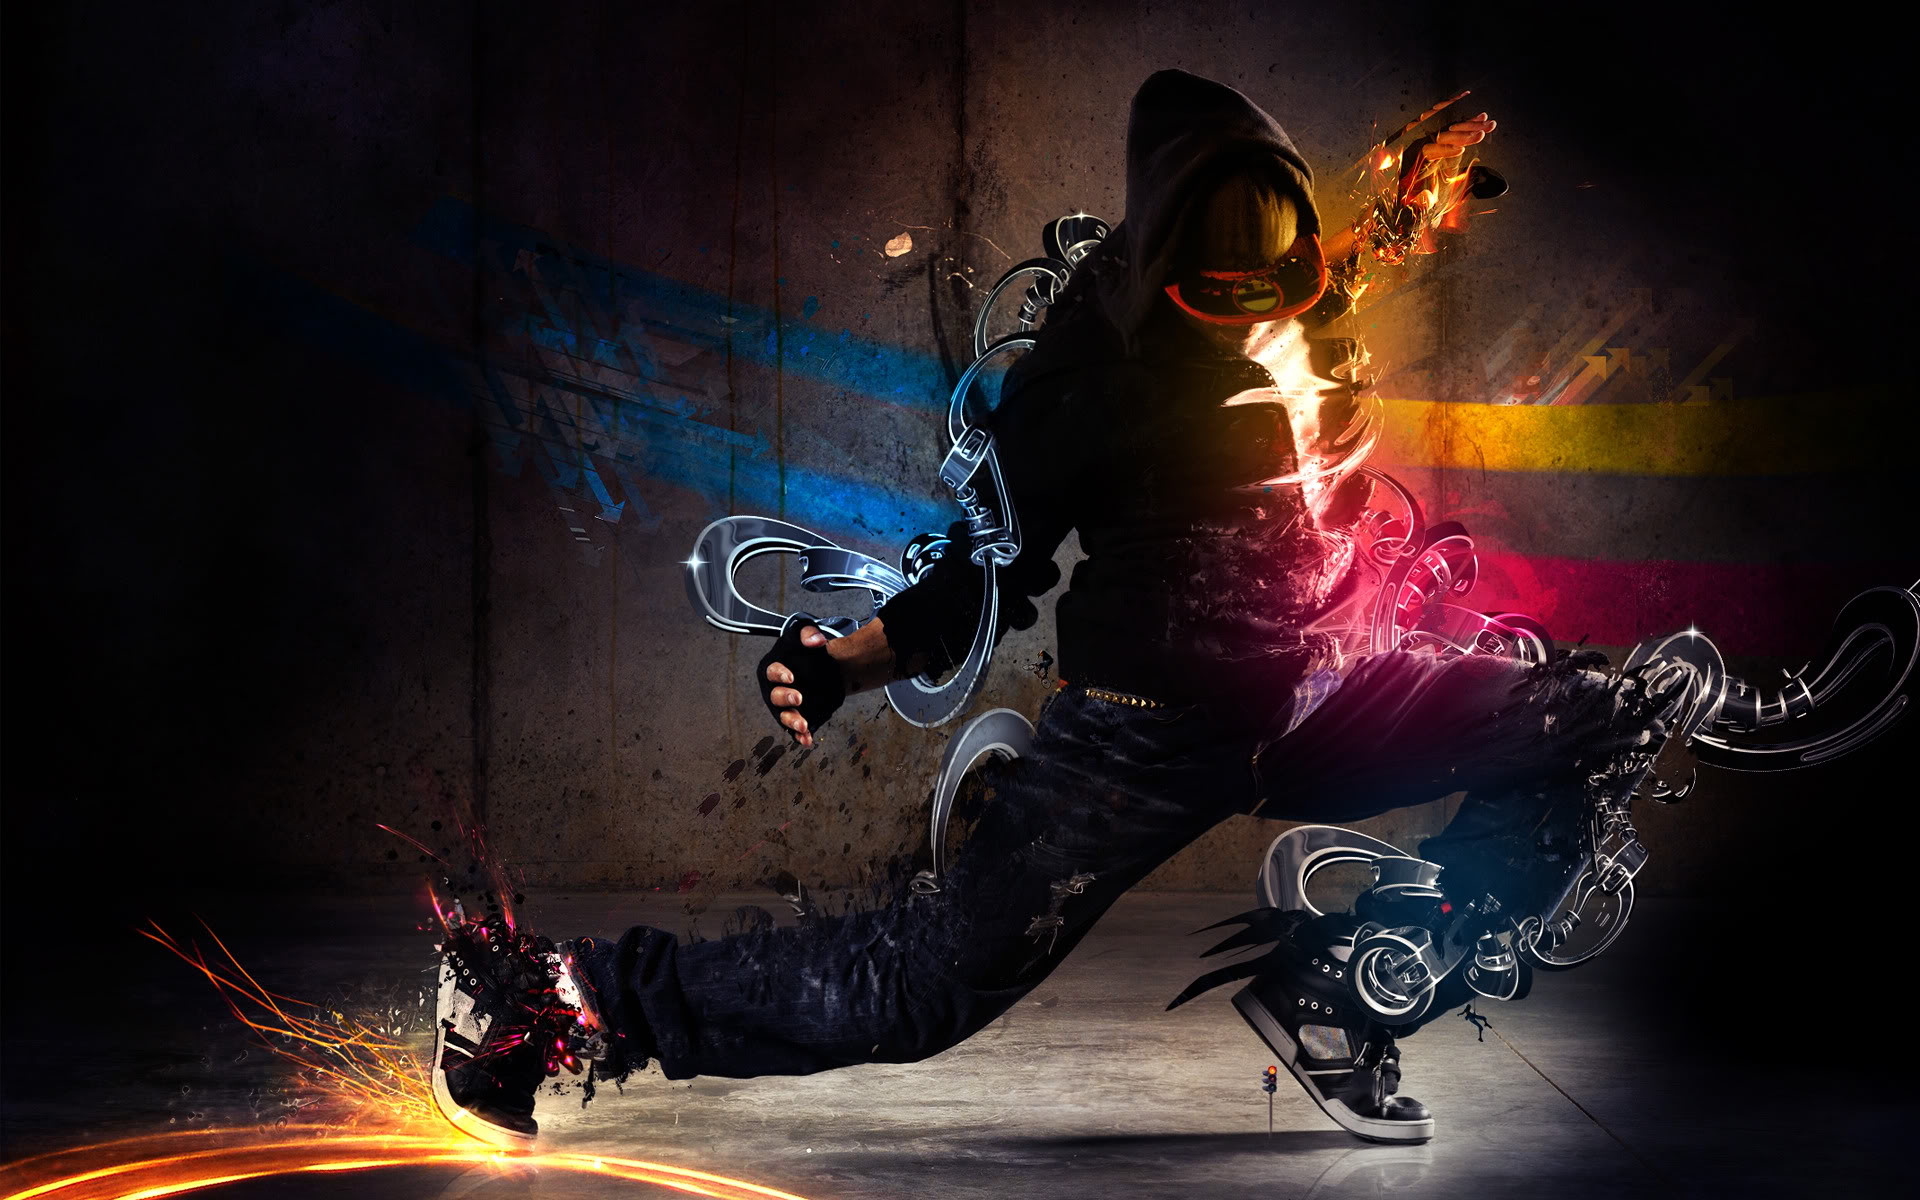 Download Cool HD Wallpapers For Boys Break Dance pictures in high 1920x1200